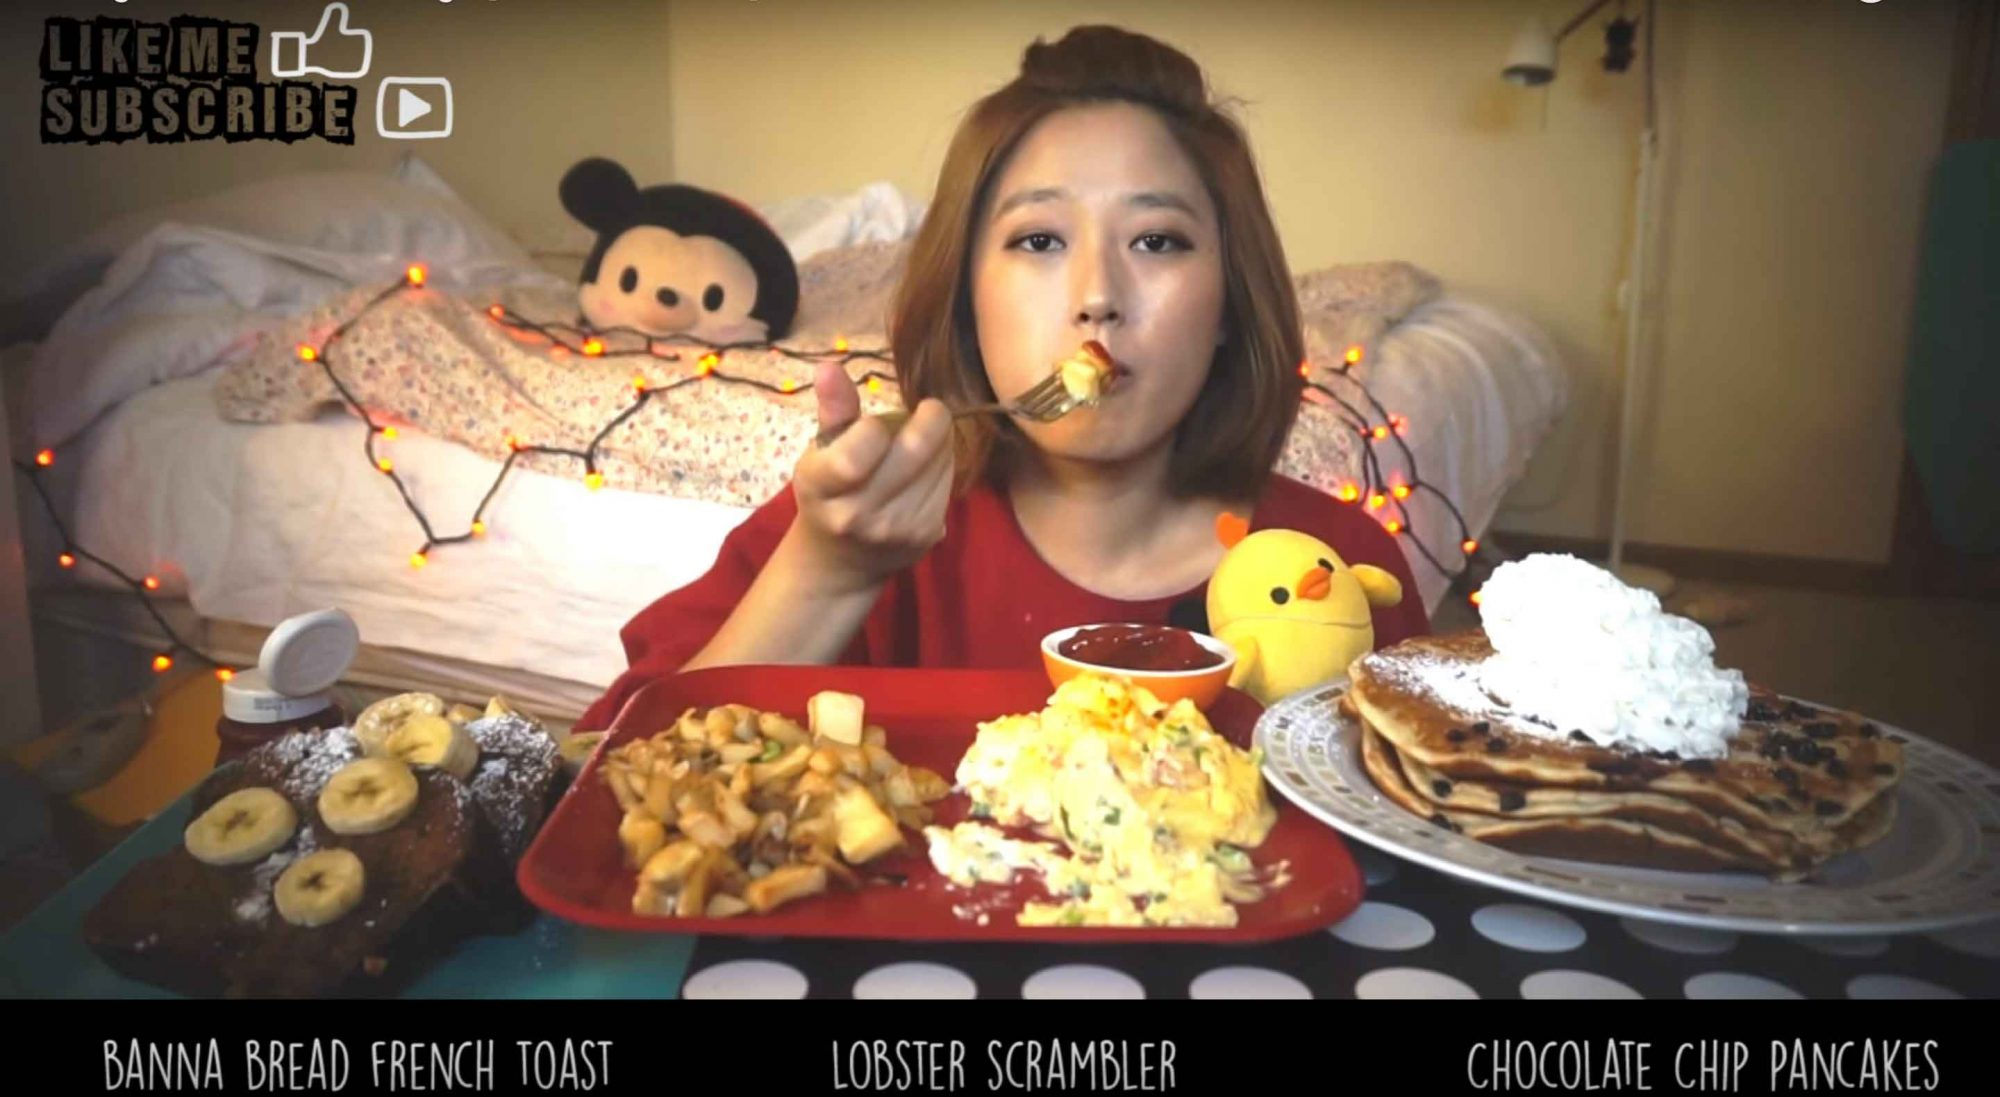 EC: Watch People Eat Heaping Portions of Breakfast on YouTube